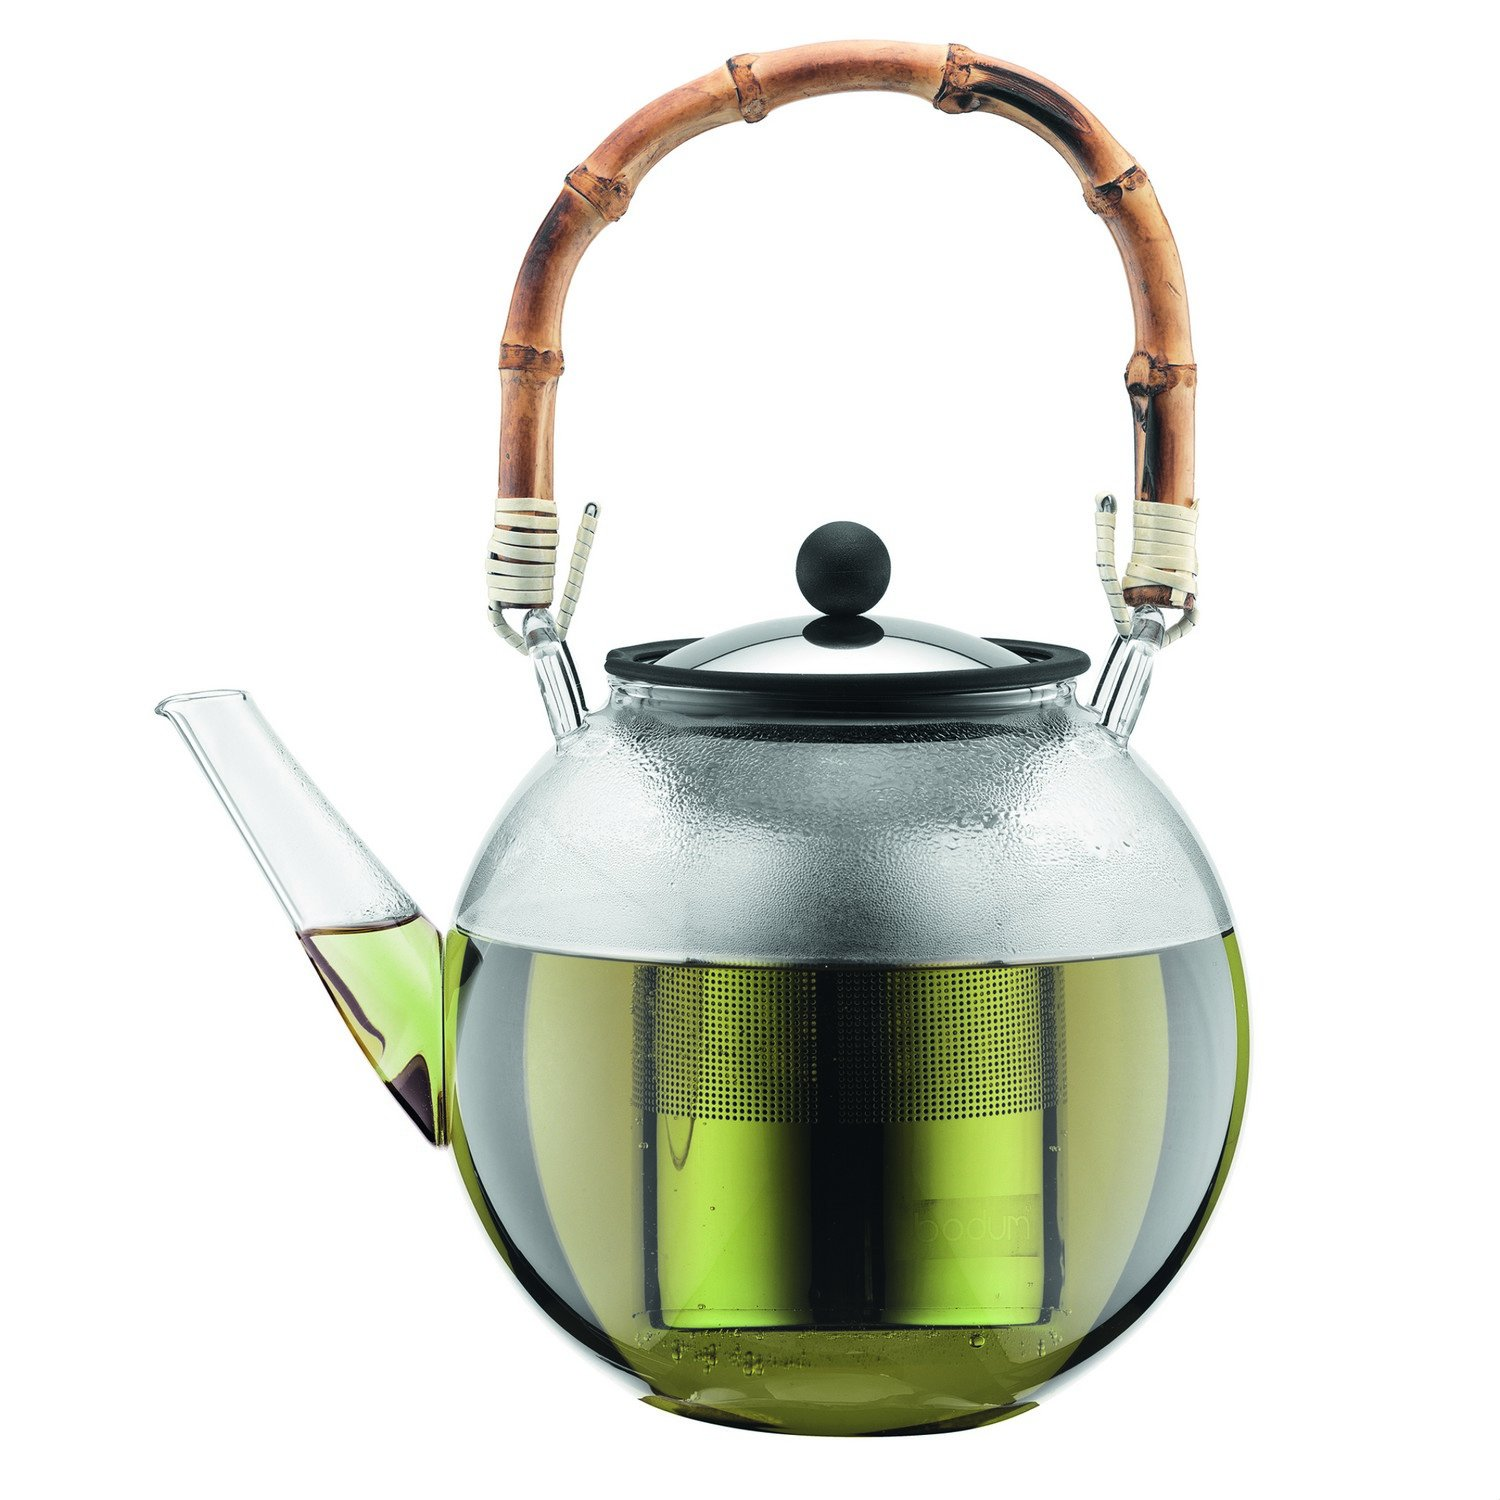 BODUM 11797-139 Tea Press, Stainless Steel, Bamboo Handle, Transparent Filter, 1.5 l, stainless steel, bamboo, Glass, 16.4 cm